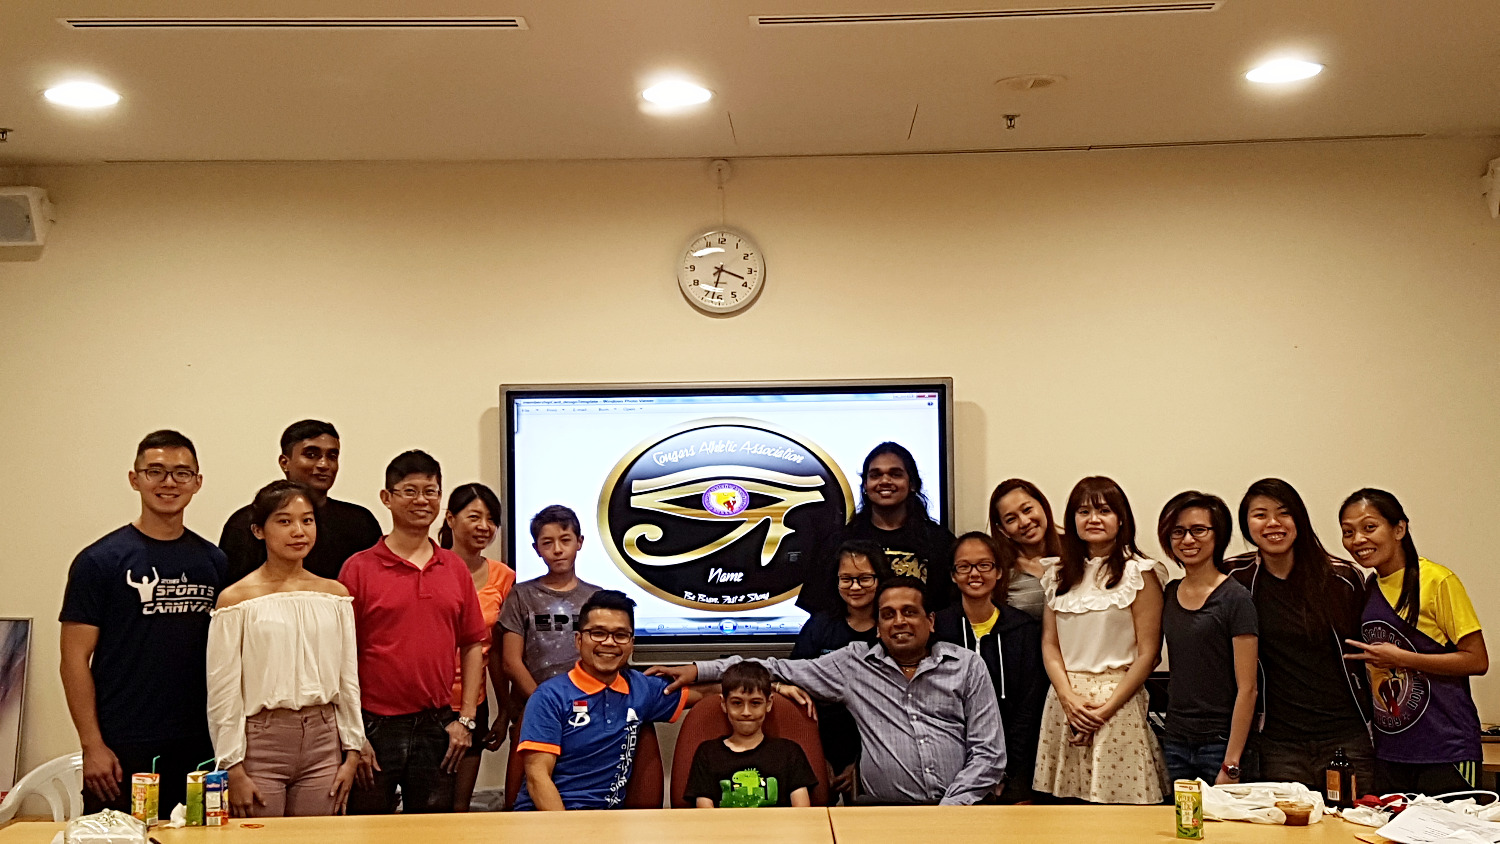 Cougars Annual General Meeting 2017